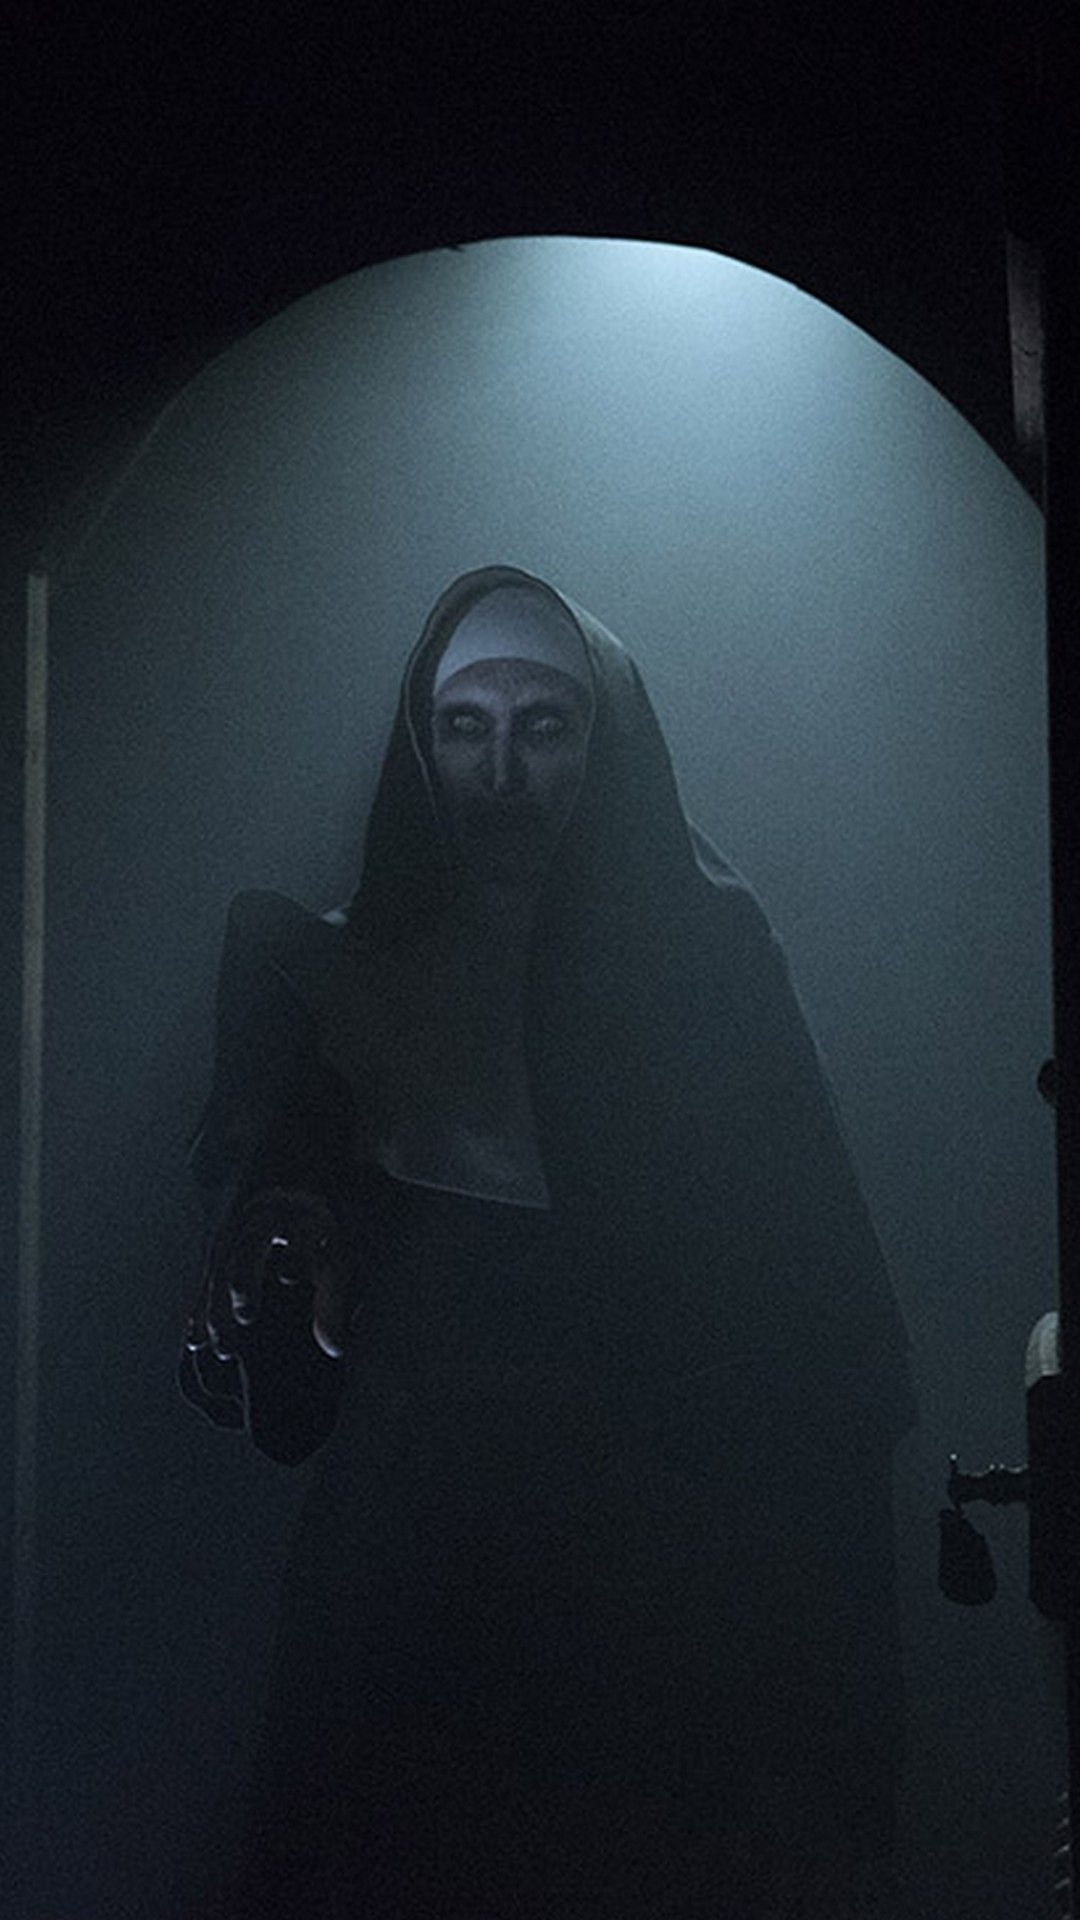 Android Wallpaper The Nun Valak Best Android Wallpapers